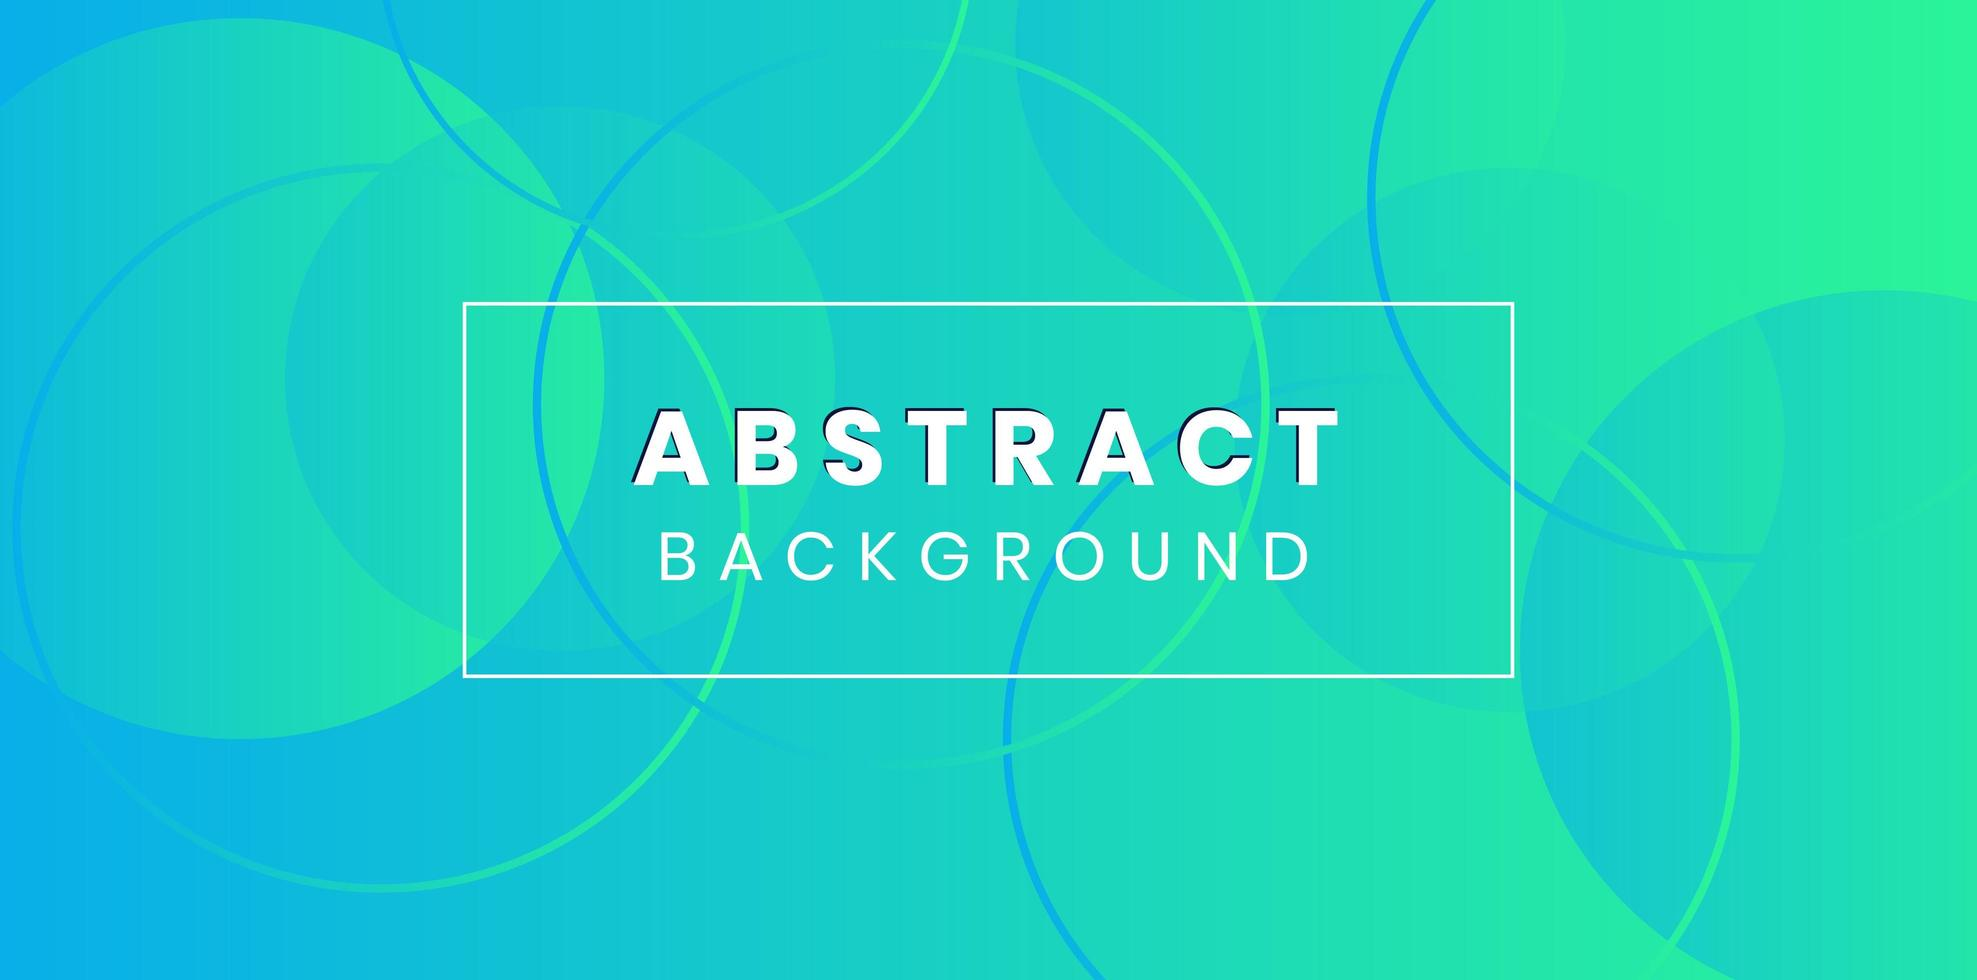 Blue green gradient and circles abstract background  vector